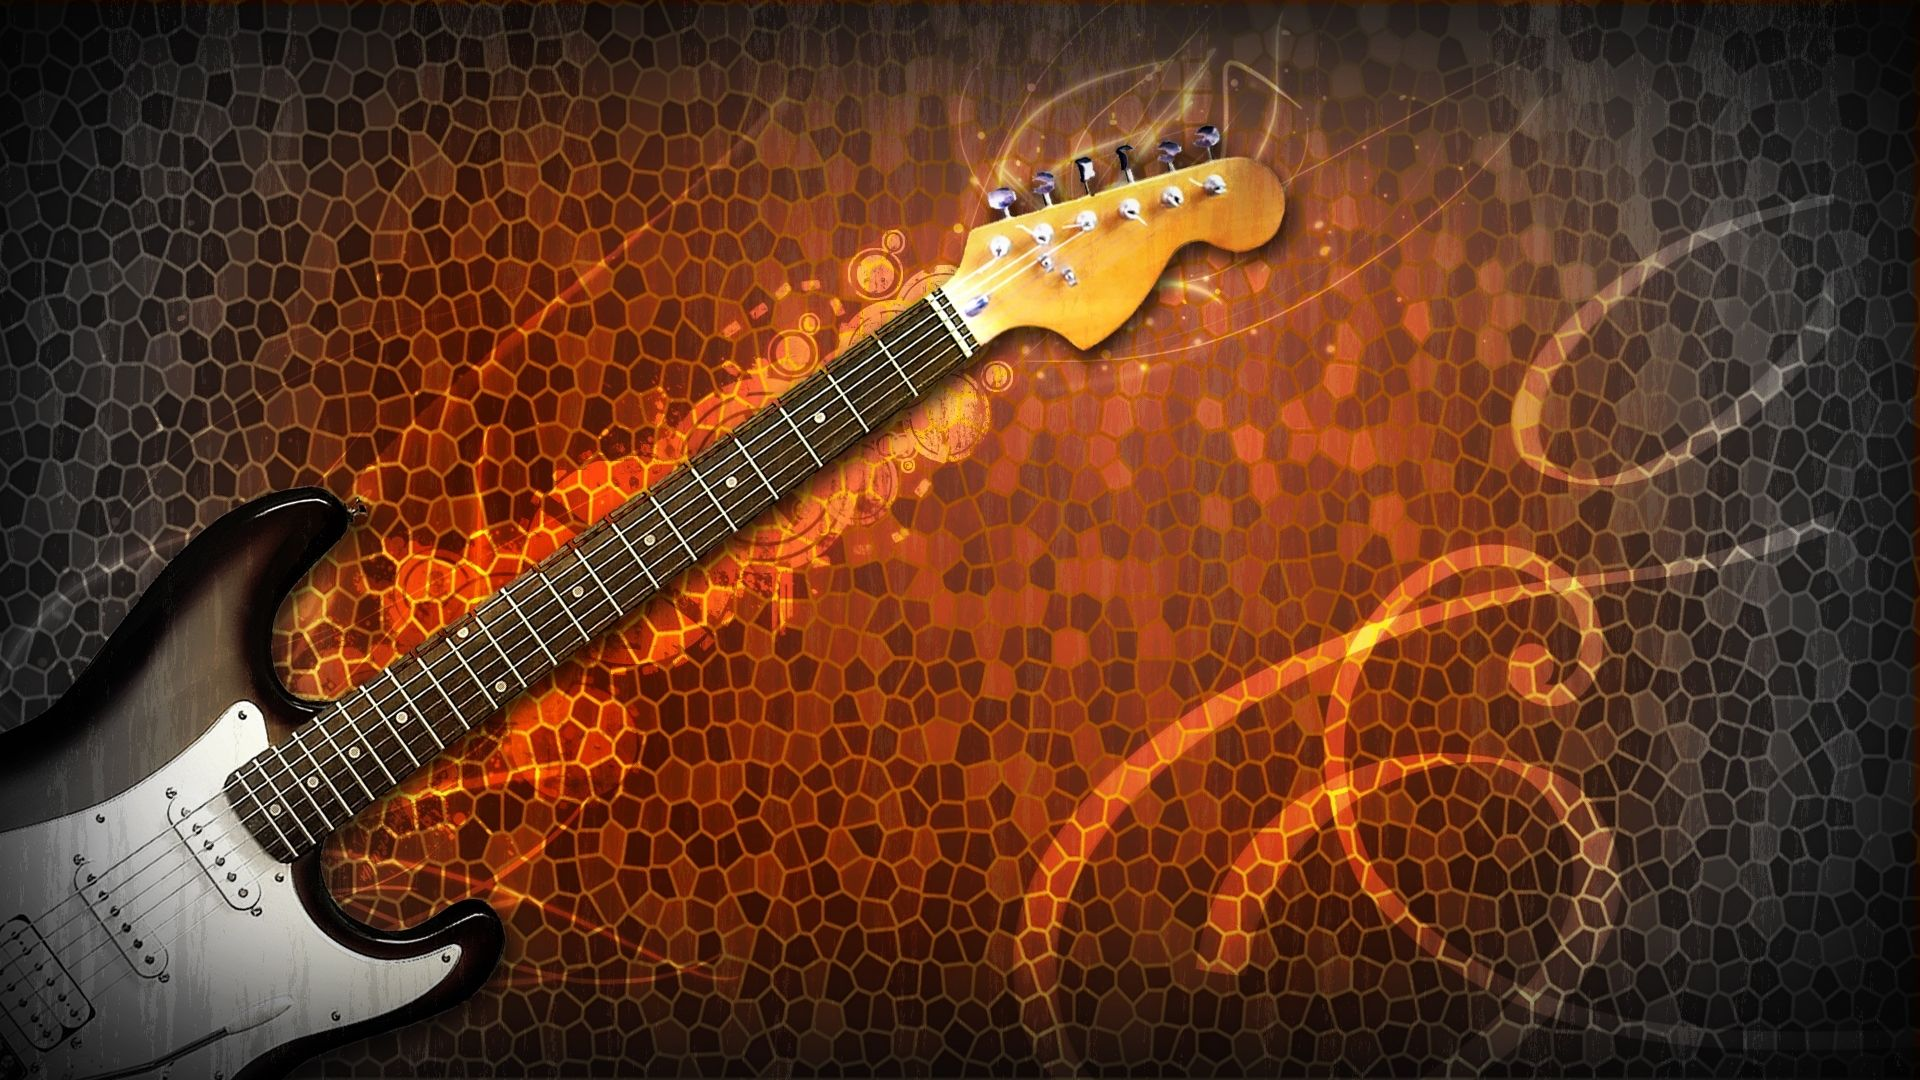 Fire Guitar, Computer Wallpaper